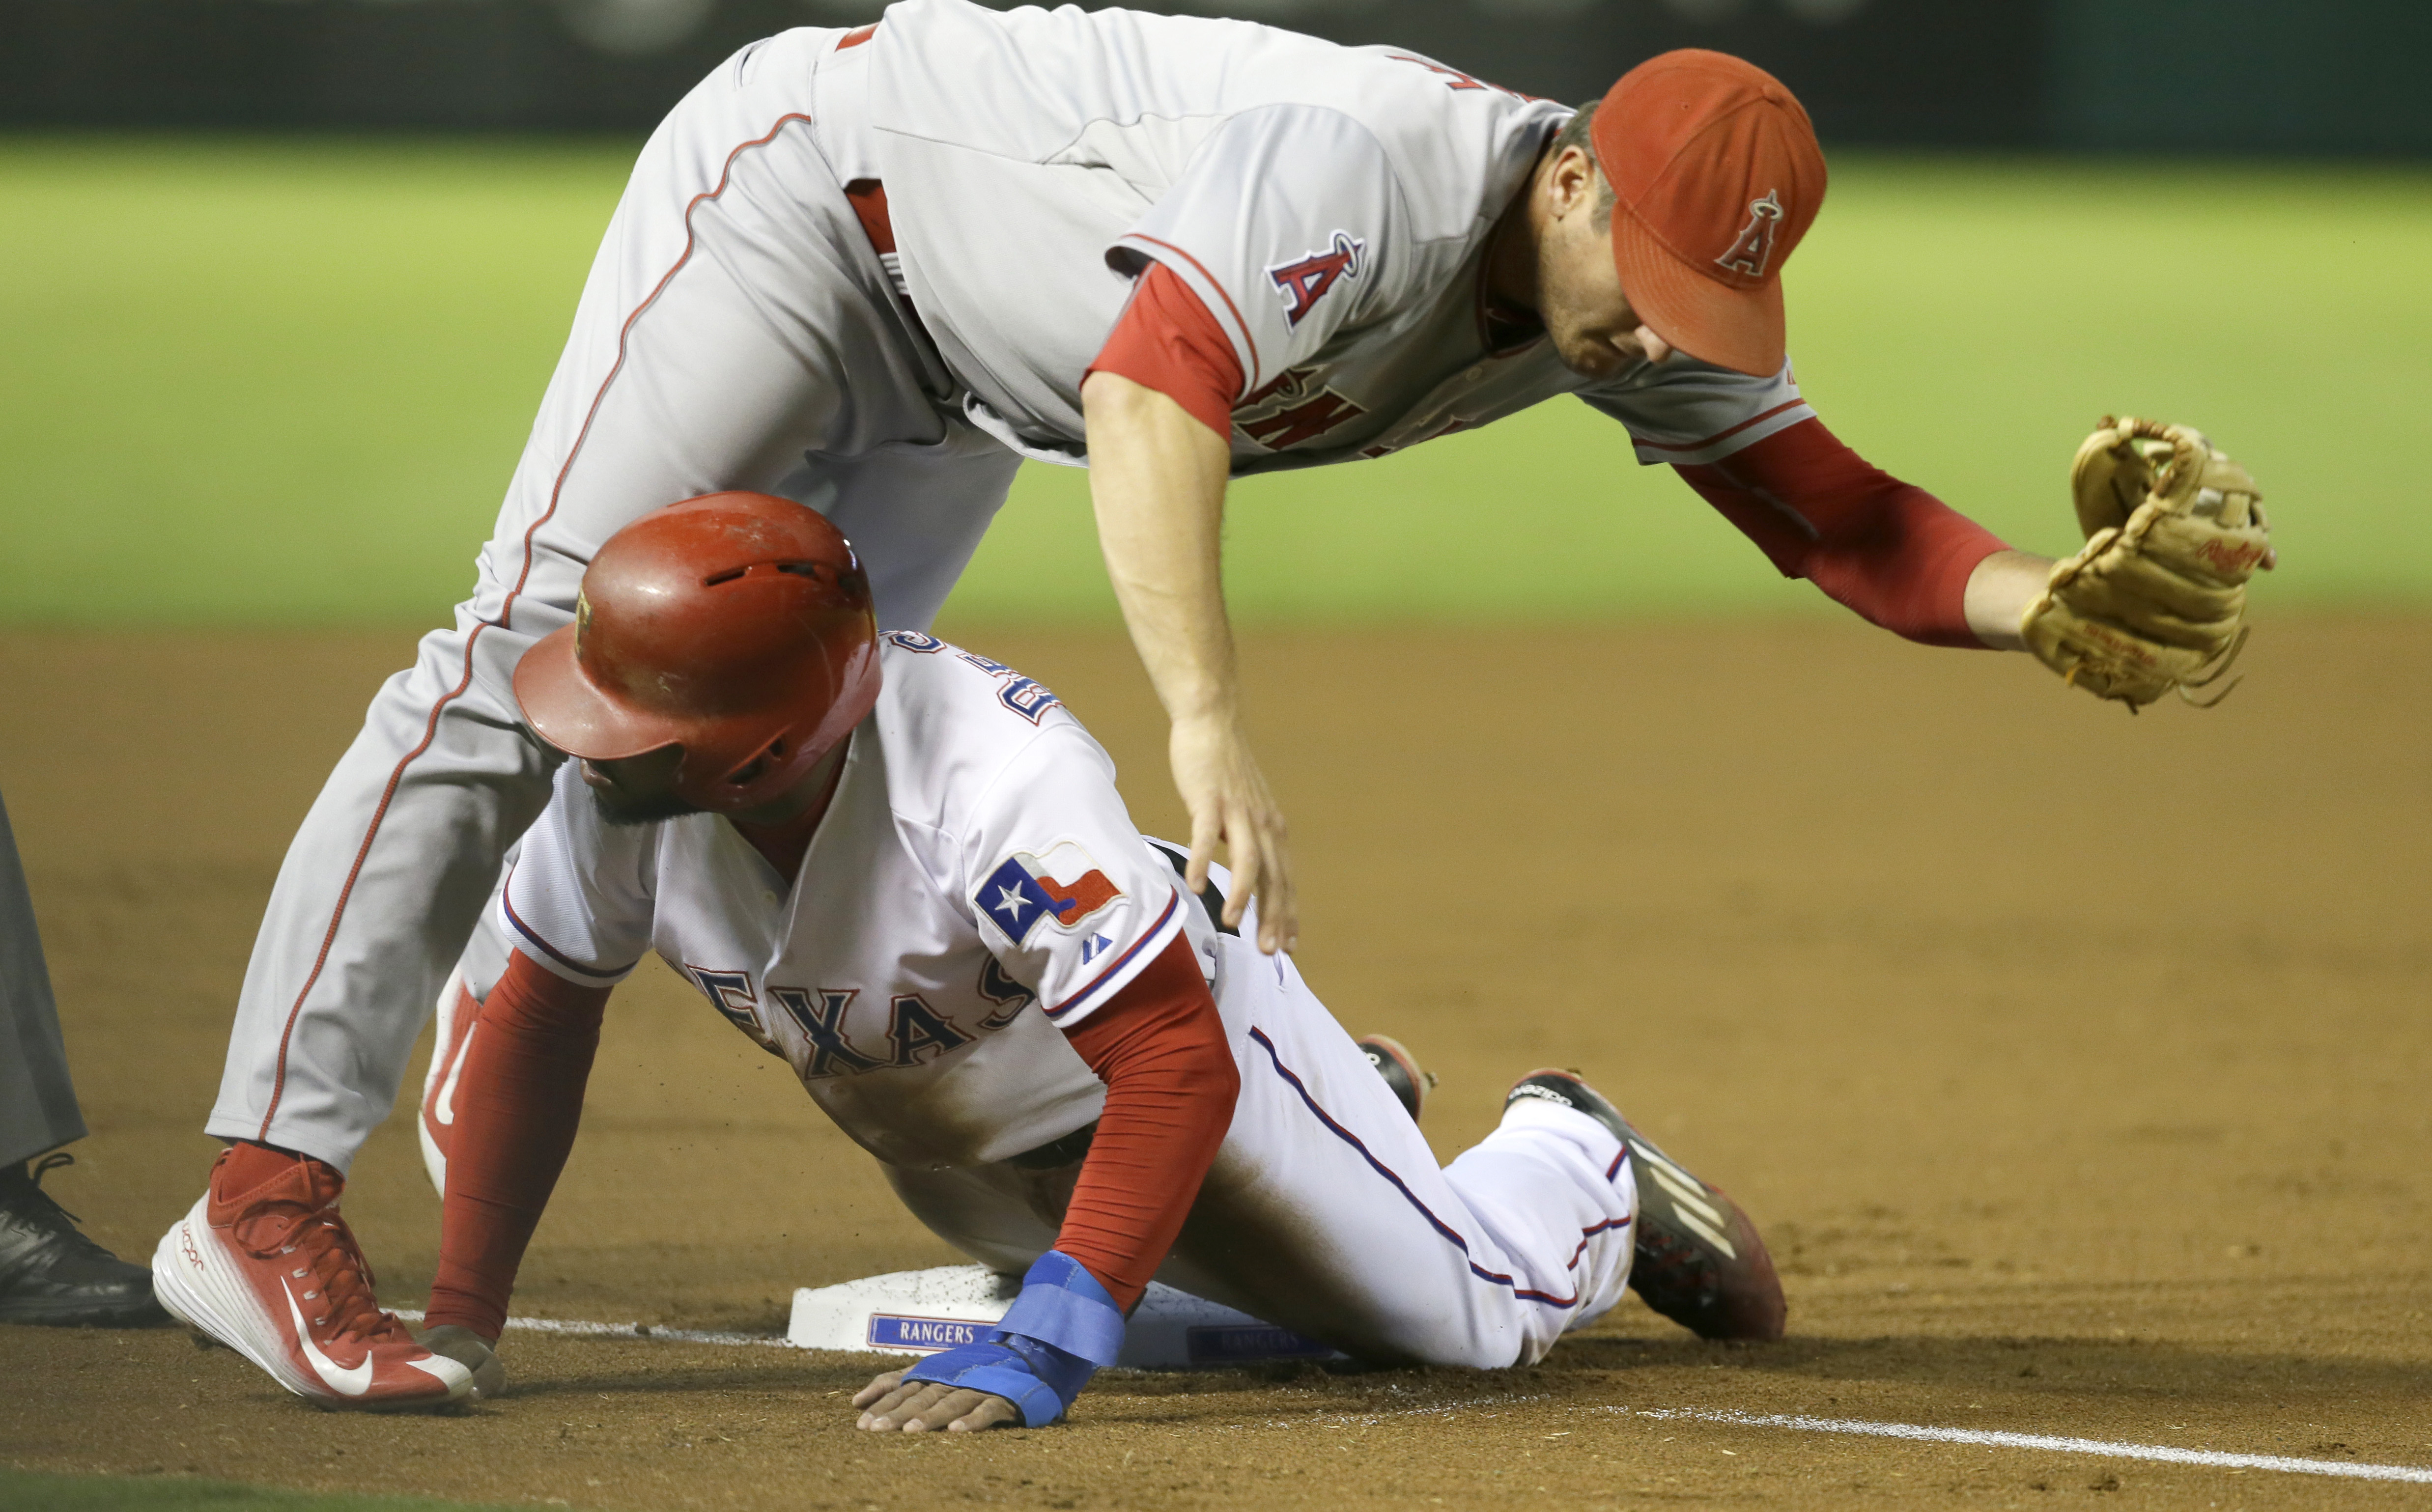 Texas Rangers Delino DeShields, bottom slides under third base against Los Angeles Angels third baseman David Freese (6) after DeShields was tagged out trying to steal during the first inning of a baseball game in Arlington, Texas, Friday, Oct. 2, 2015. (